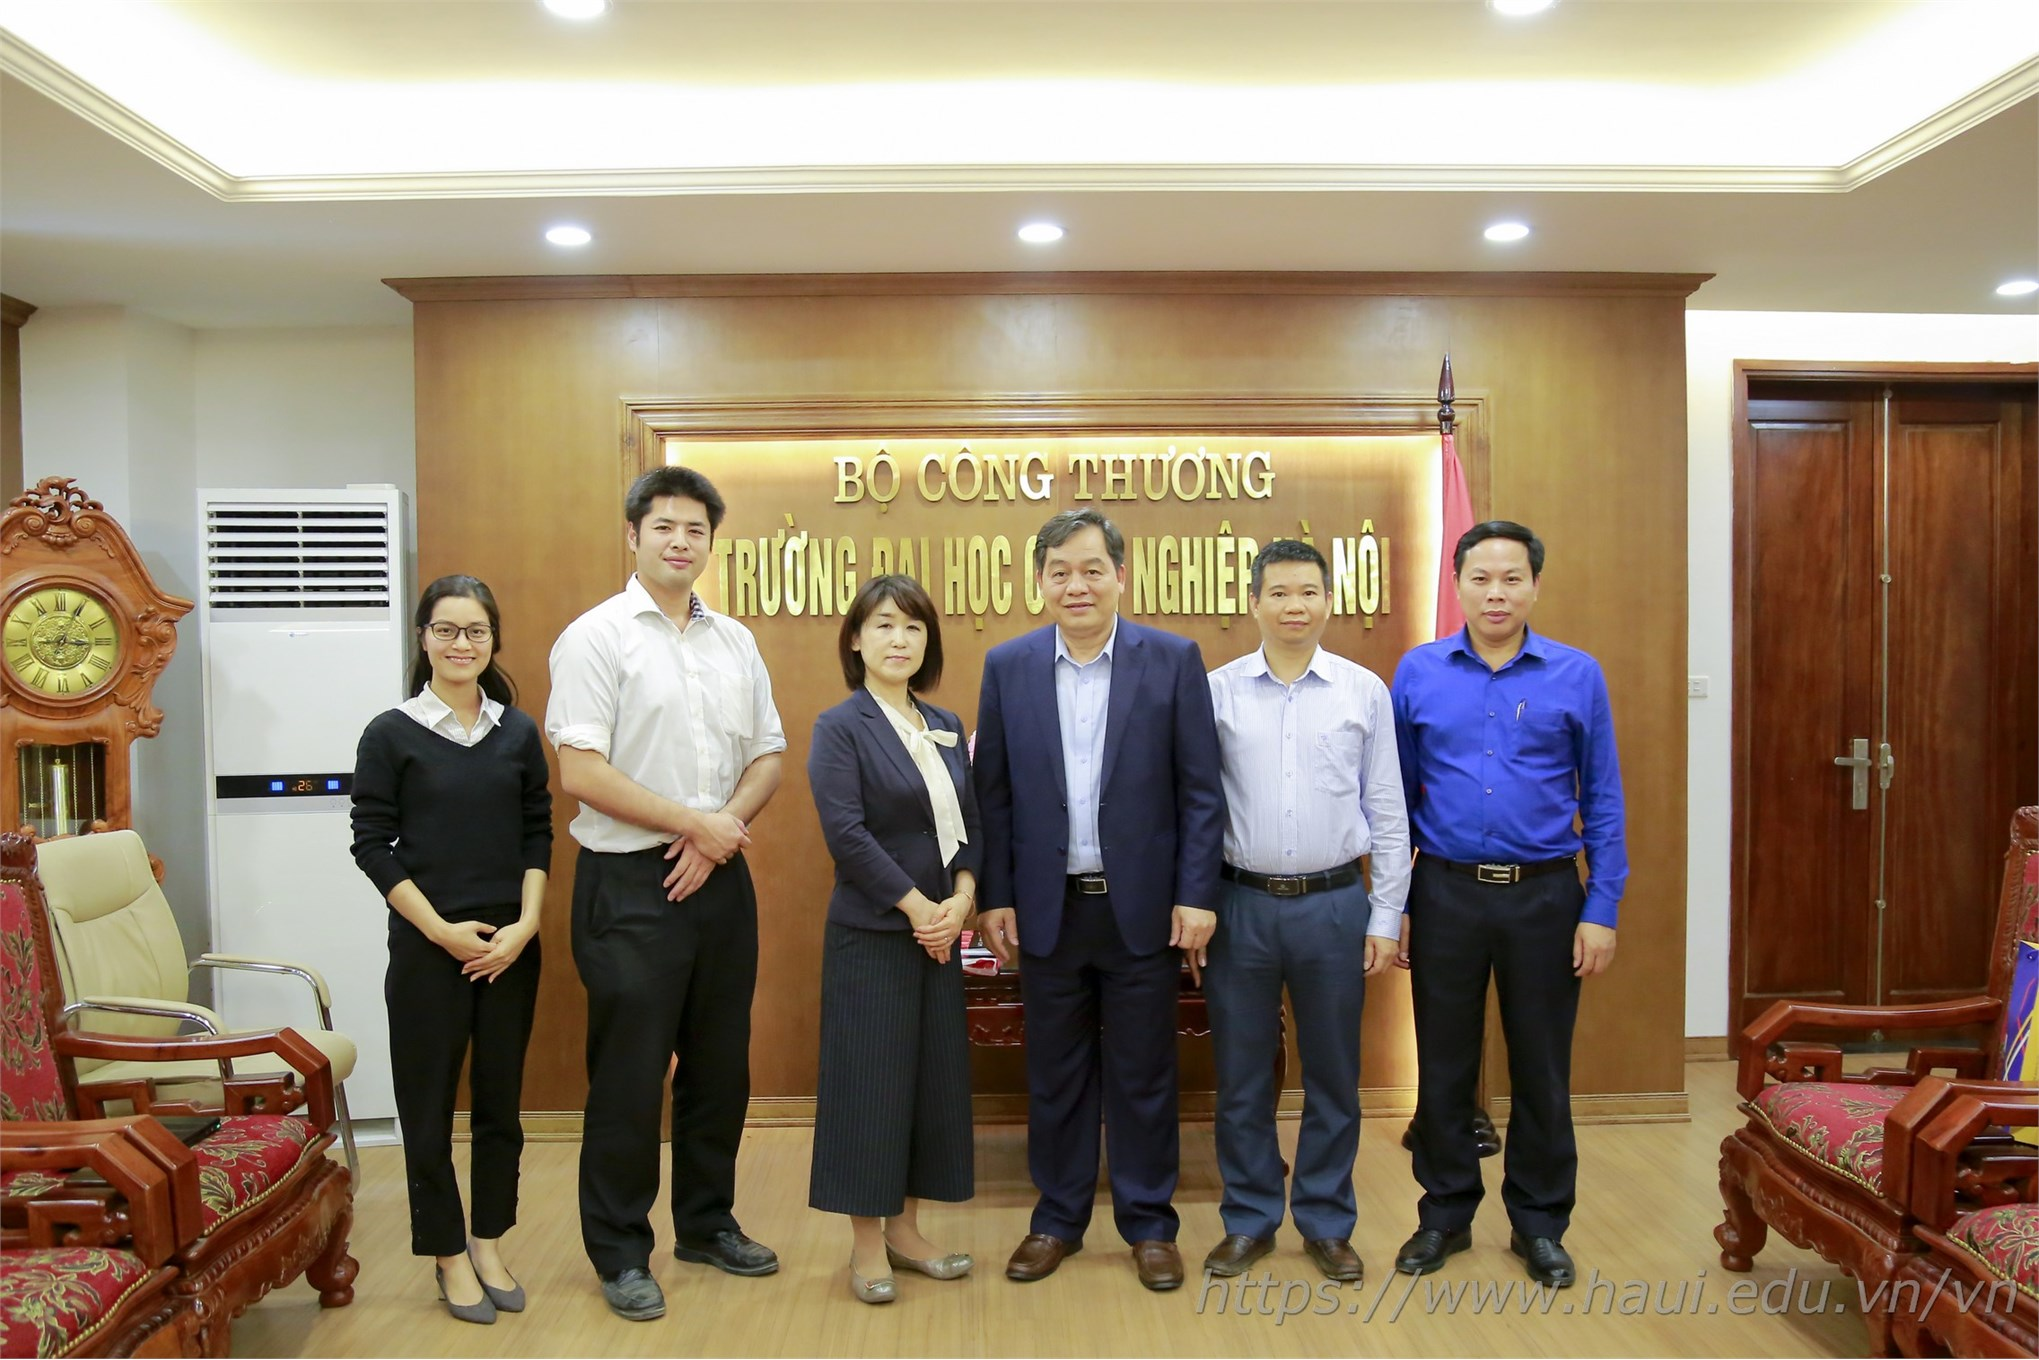 Welcoming Japanese language specialist to pay a working visit at Hanoi University of Industry